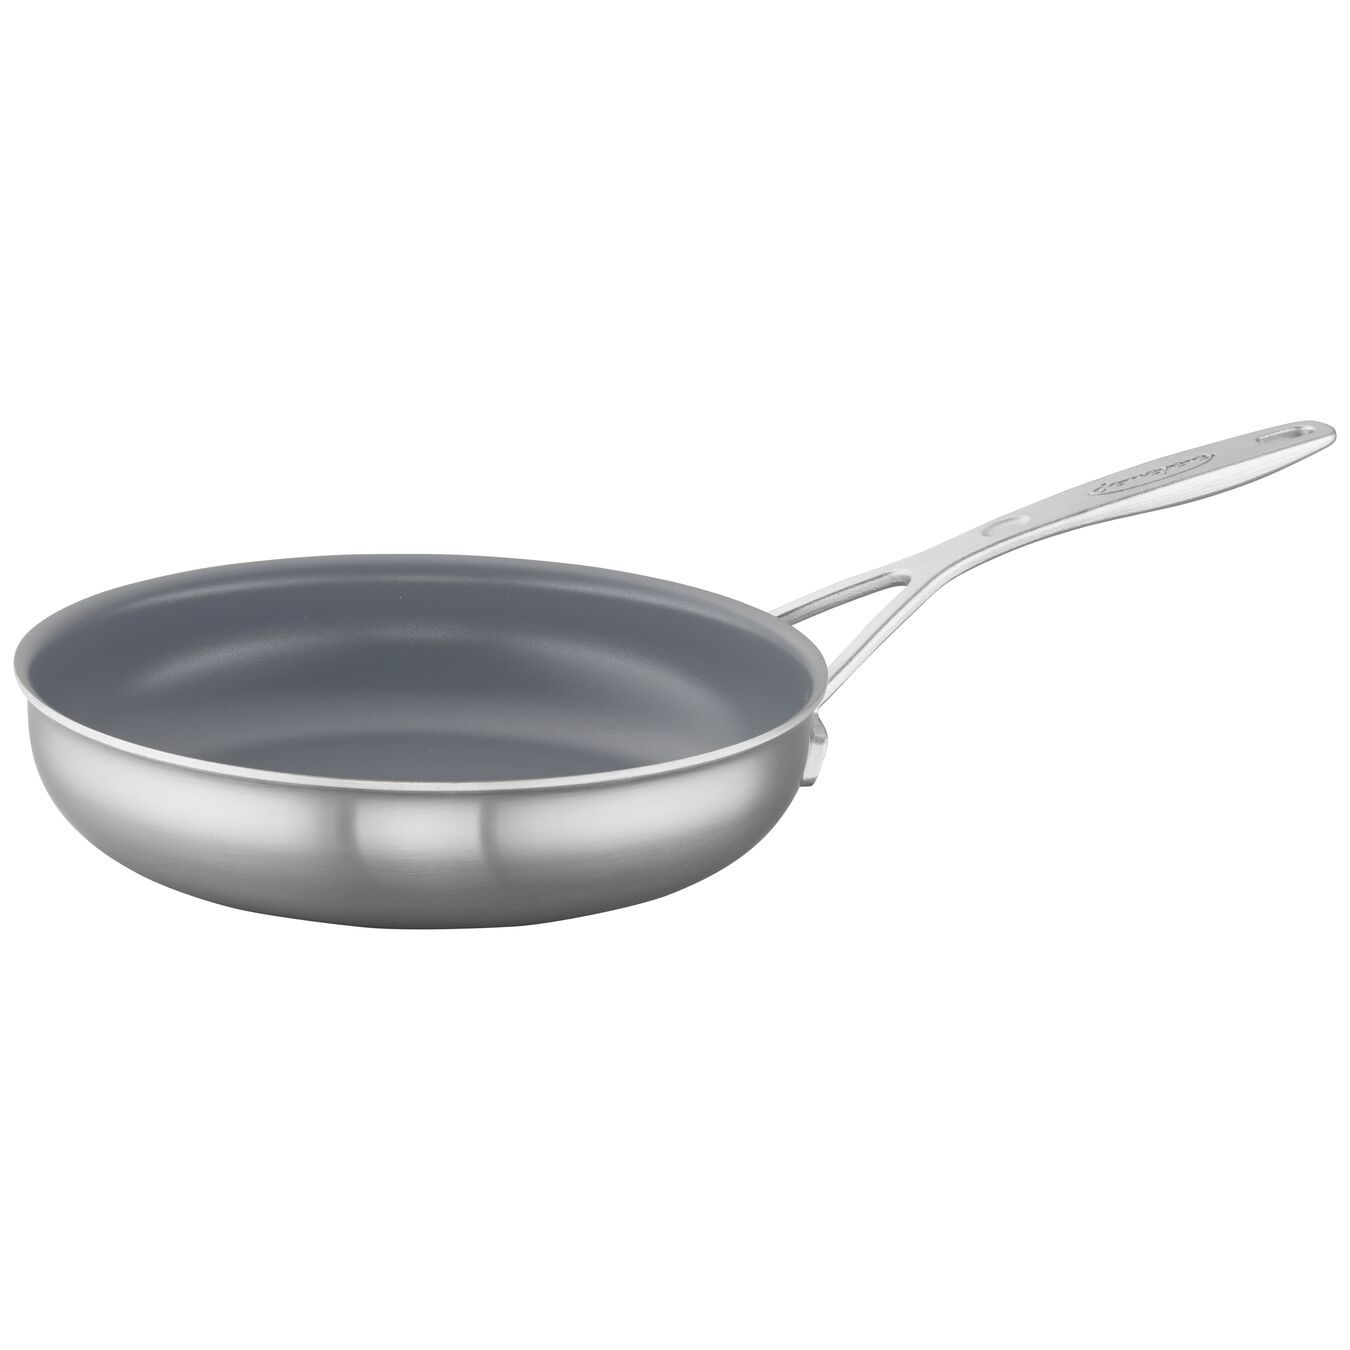 9.5-inch, 18/10 Stainless Steel, Ceramic, Frying pan,,large 2